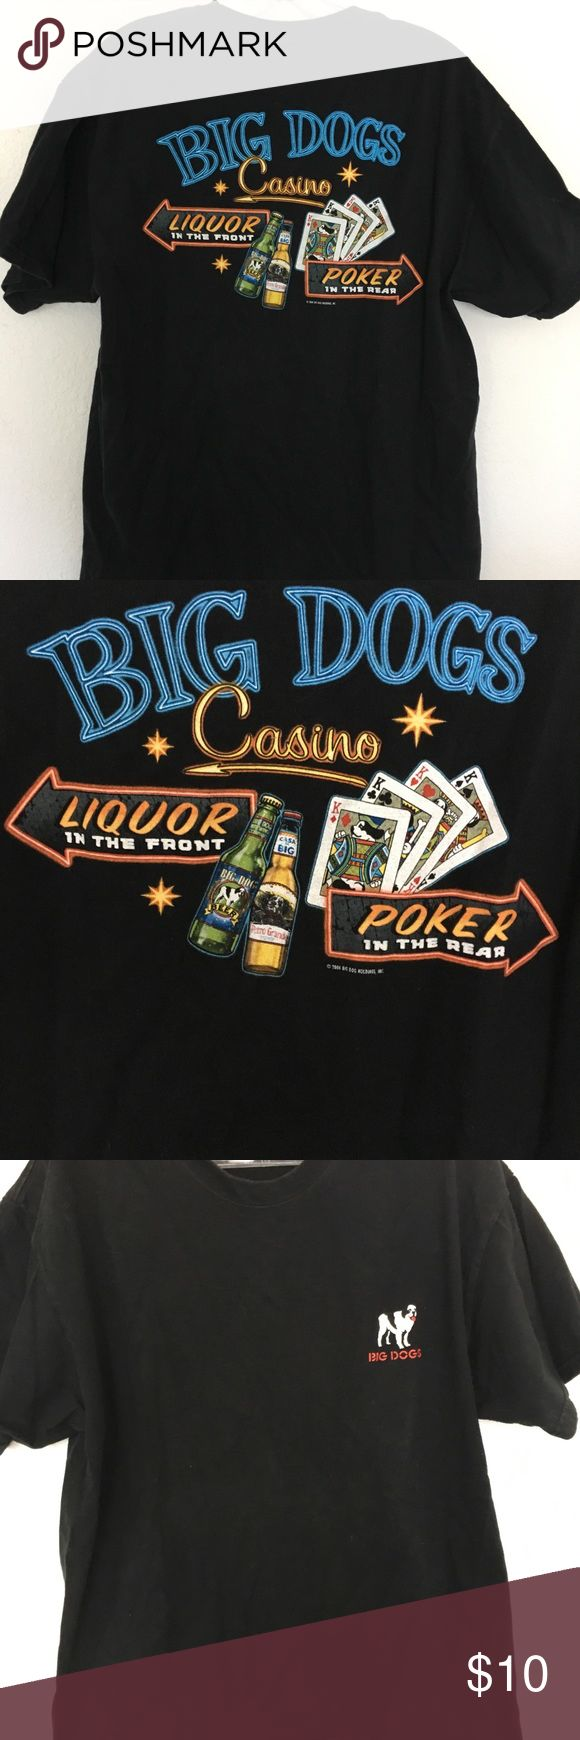 "Big Dogs Novelty T Shirt Excellent condition, only worn & washed a couple of times. Black big dogs novelty t-shirt says ""Big Dogs Casino Liquor up Front Poker in the Rear"" size men's large Big Dogs Shirts Tees - Short Sleeve"